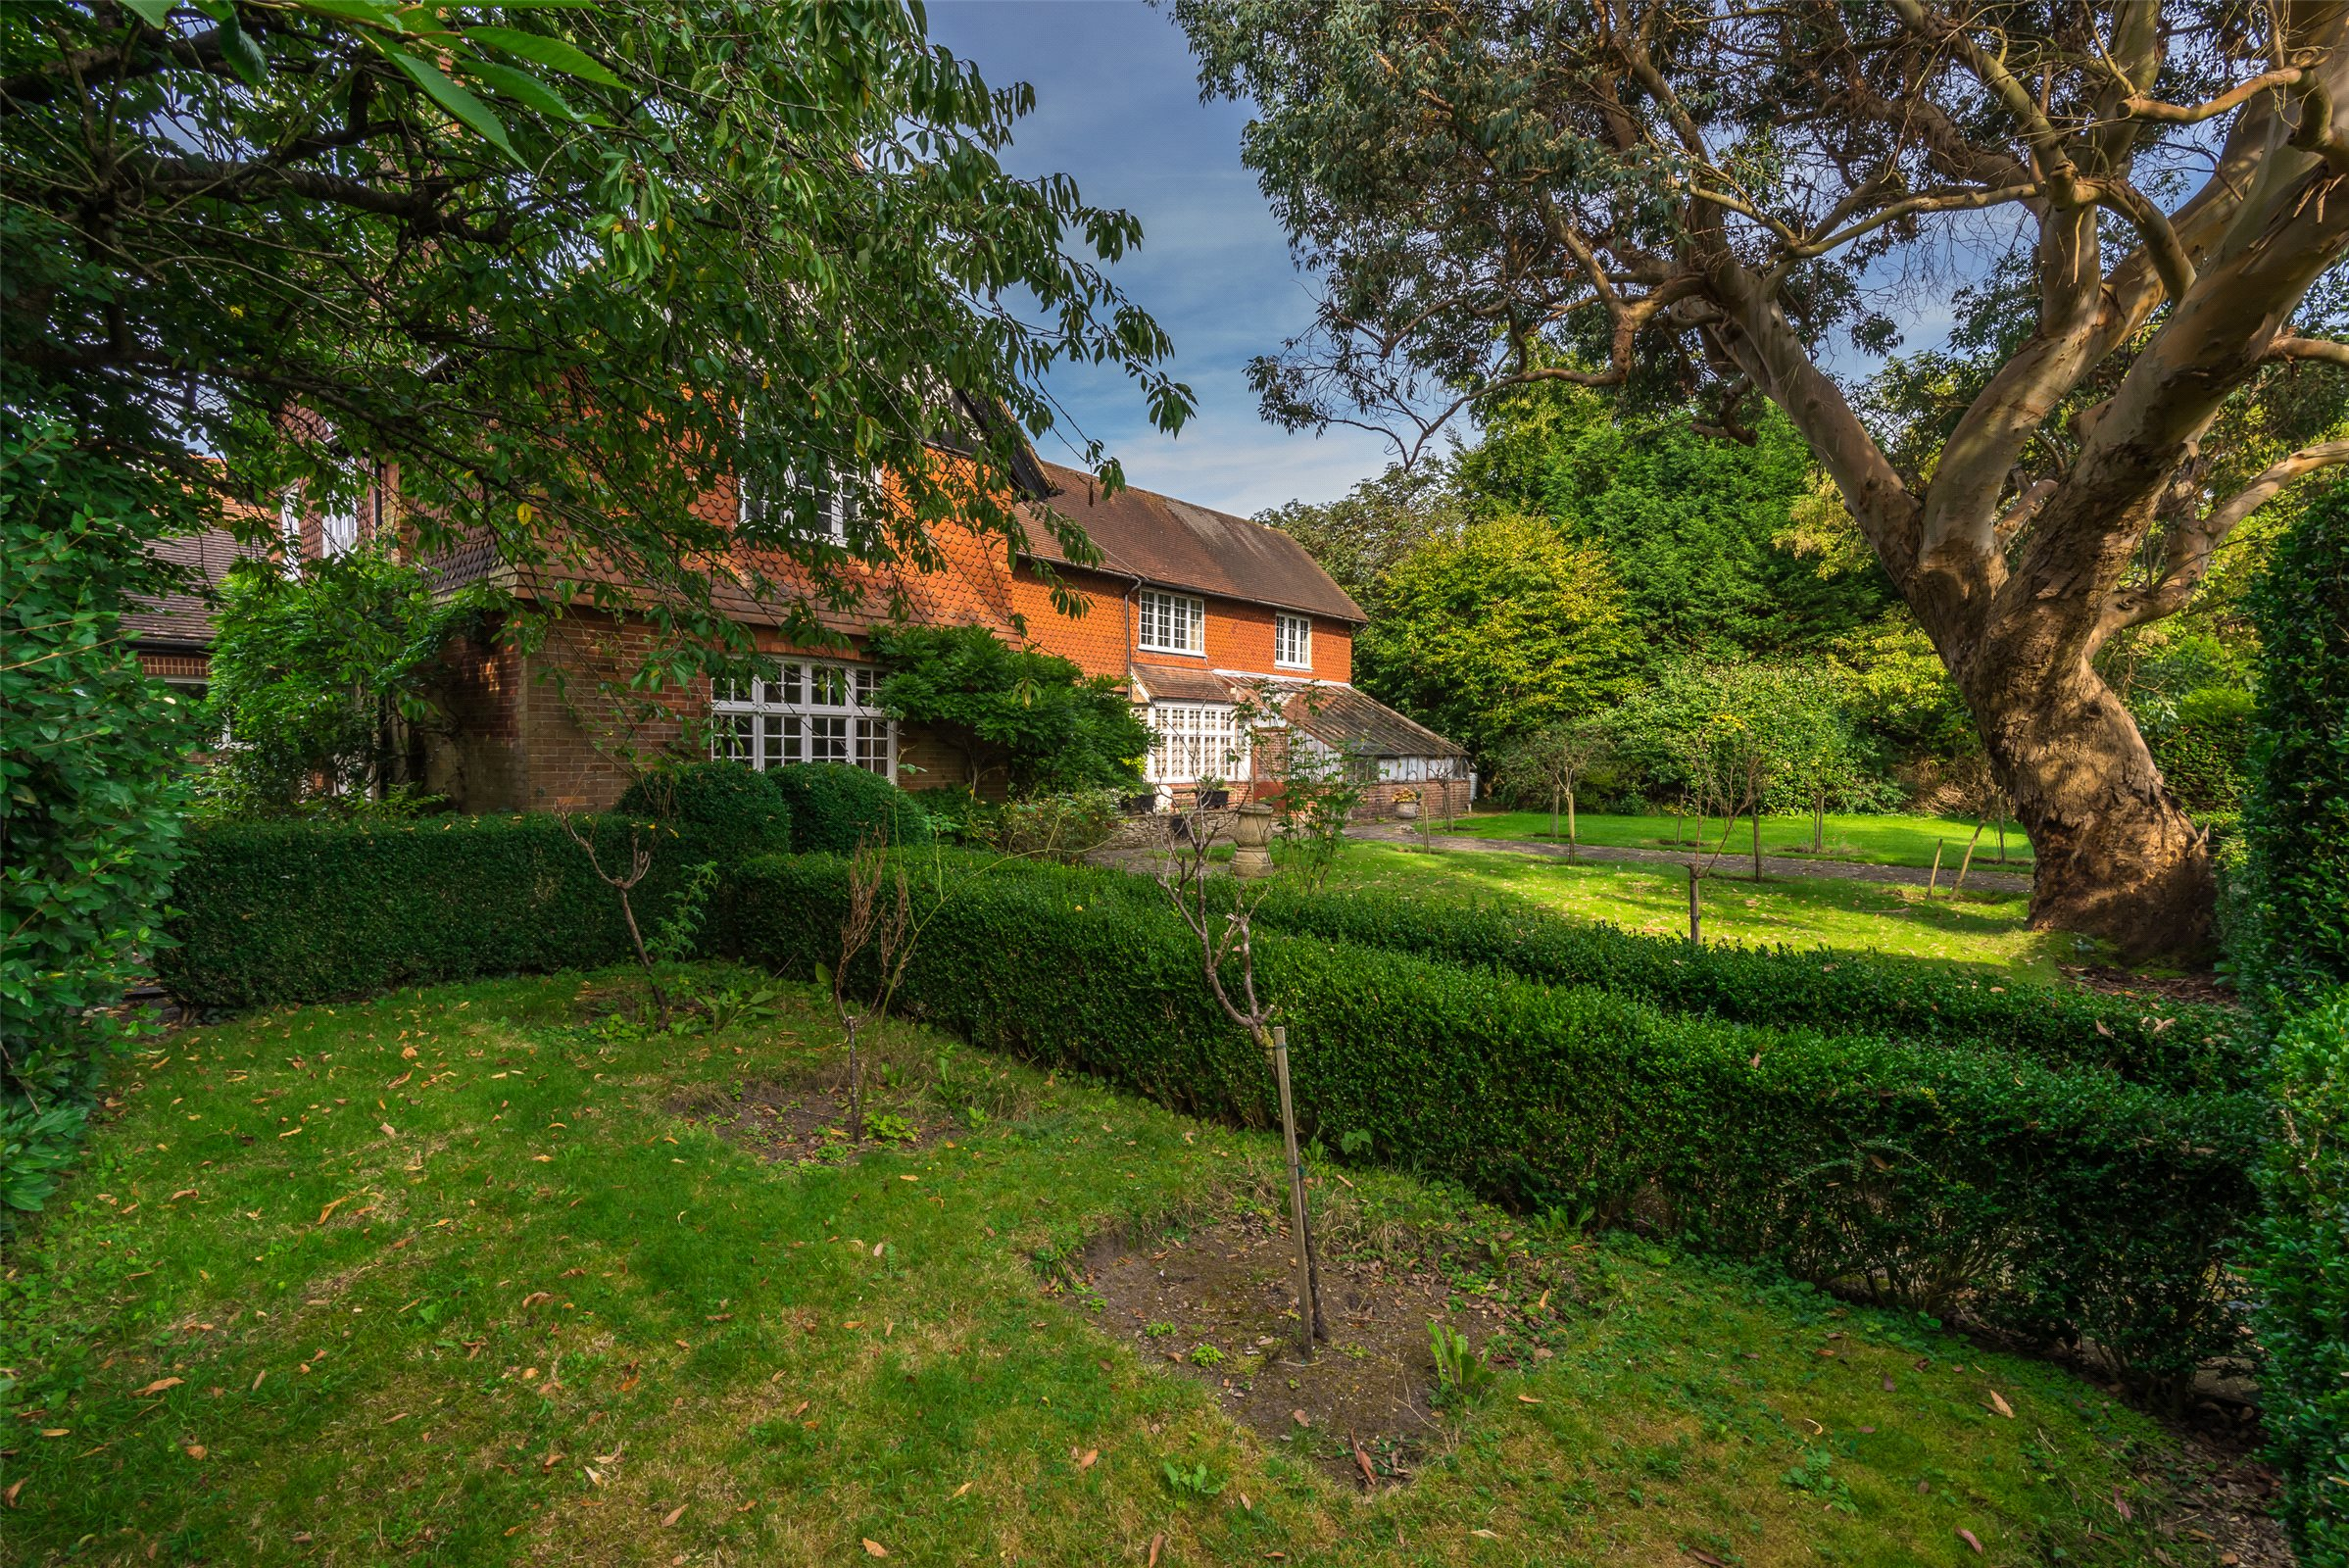 5 Bedrooms House for sale in West Street, Reigate, Surrey, RH2